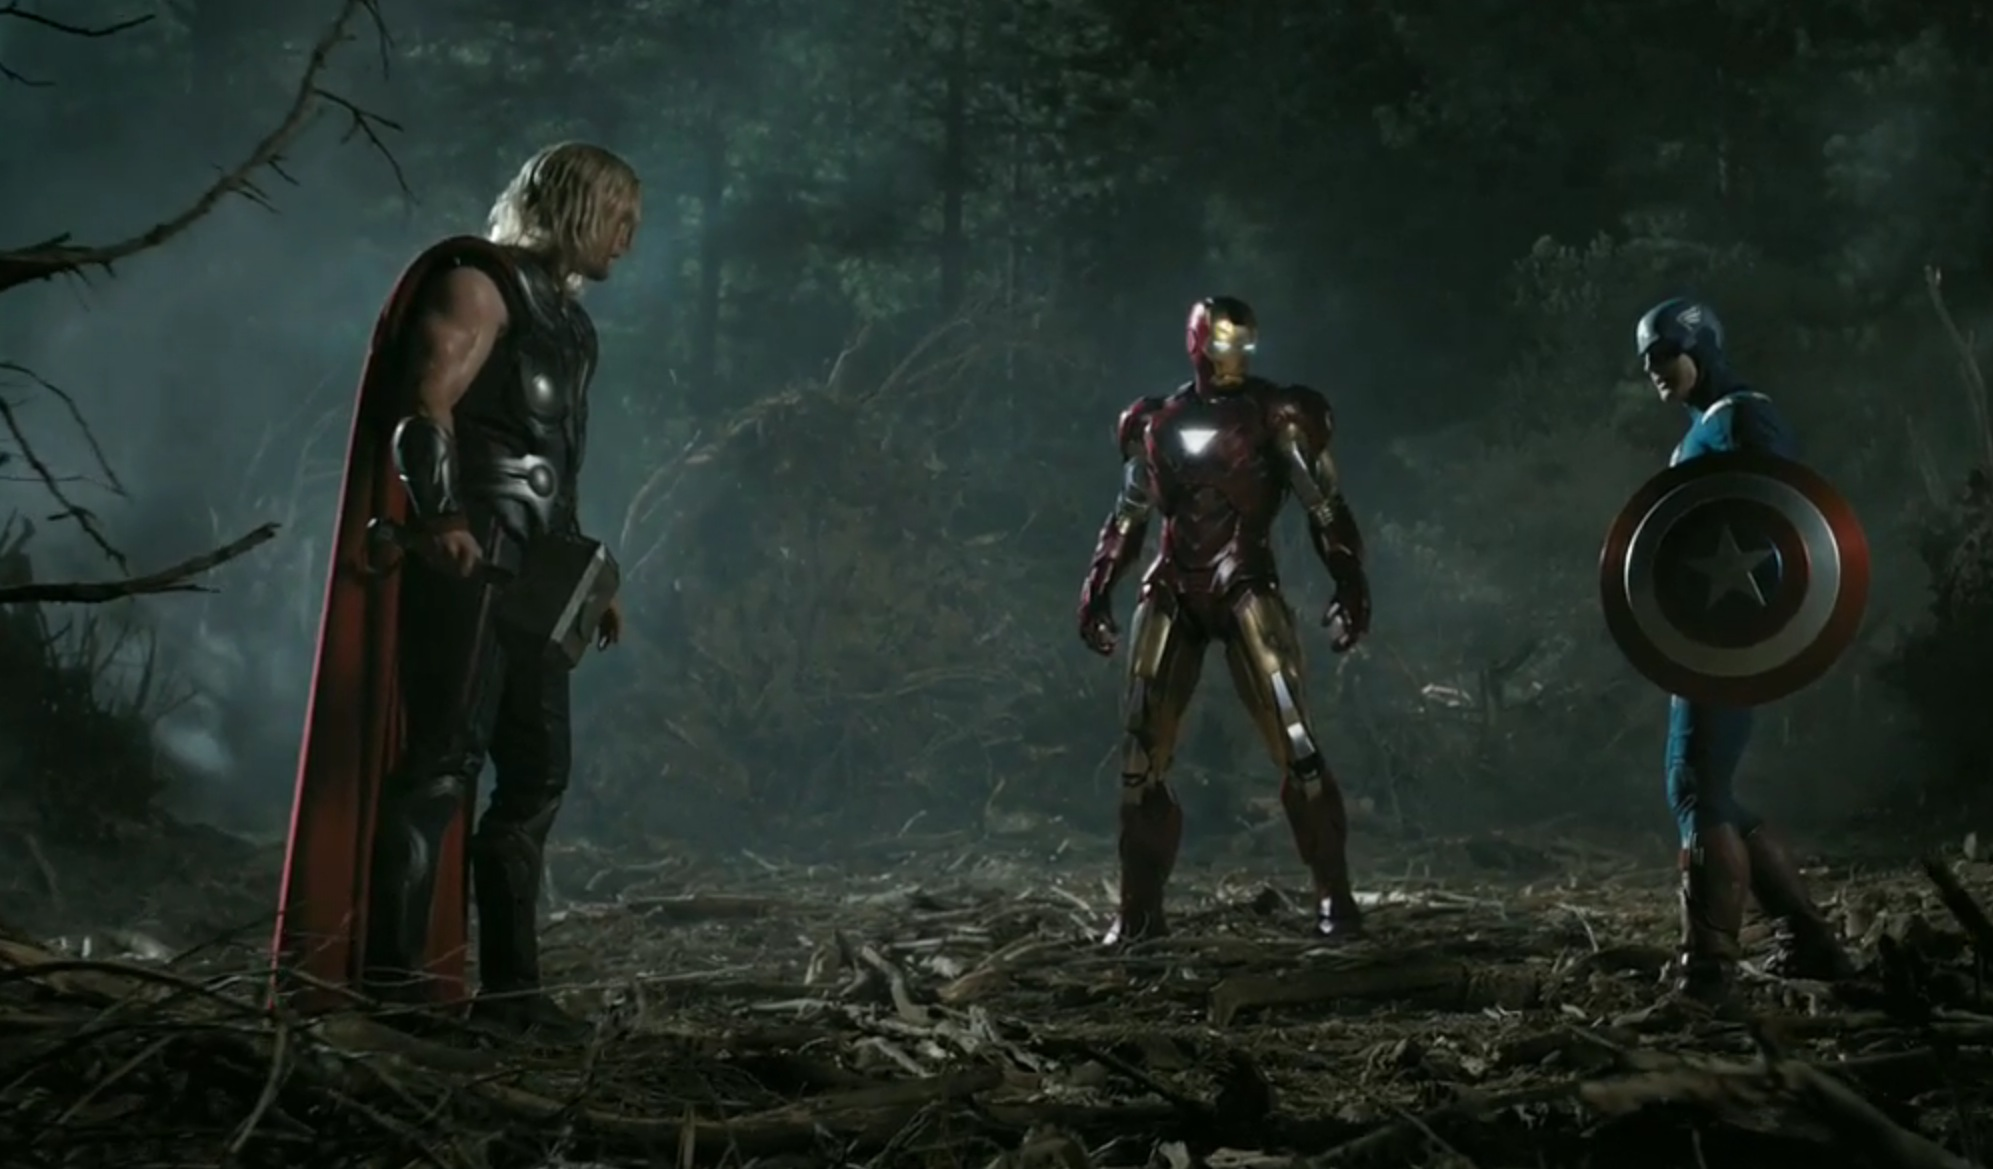 Avengers trailer sets iTunes record with 13.7M views in 24 hours